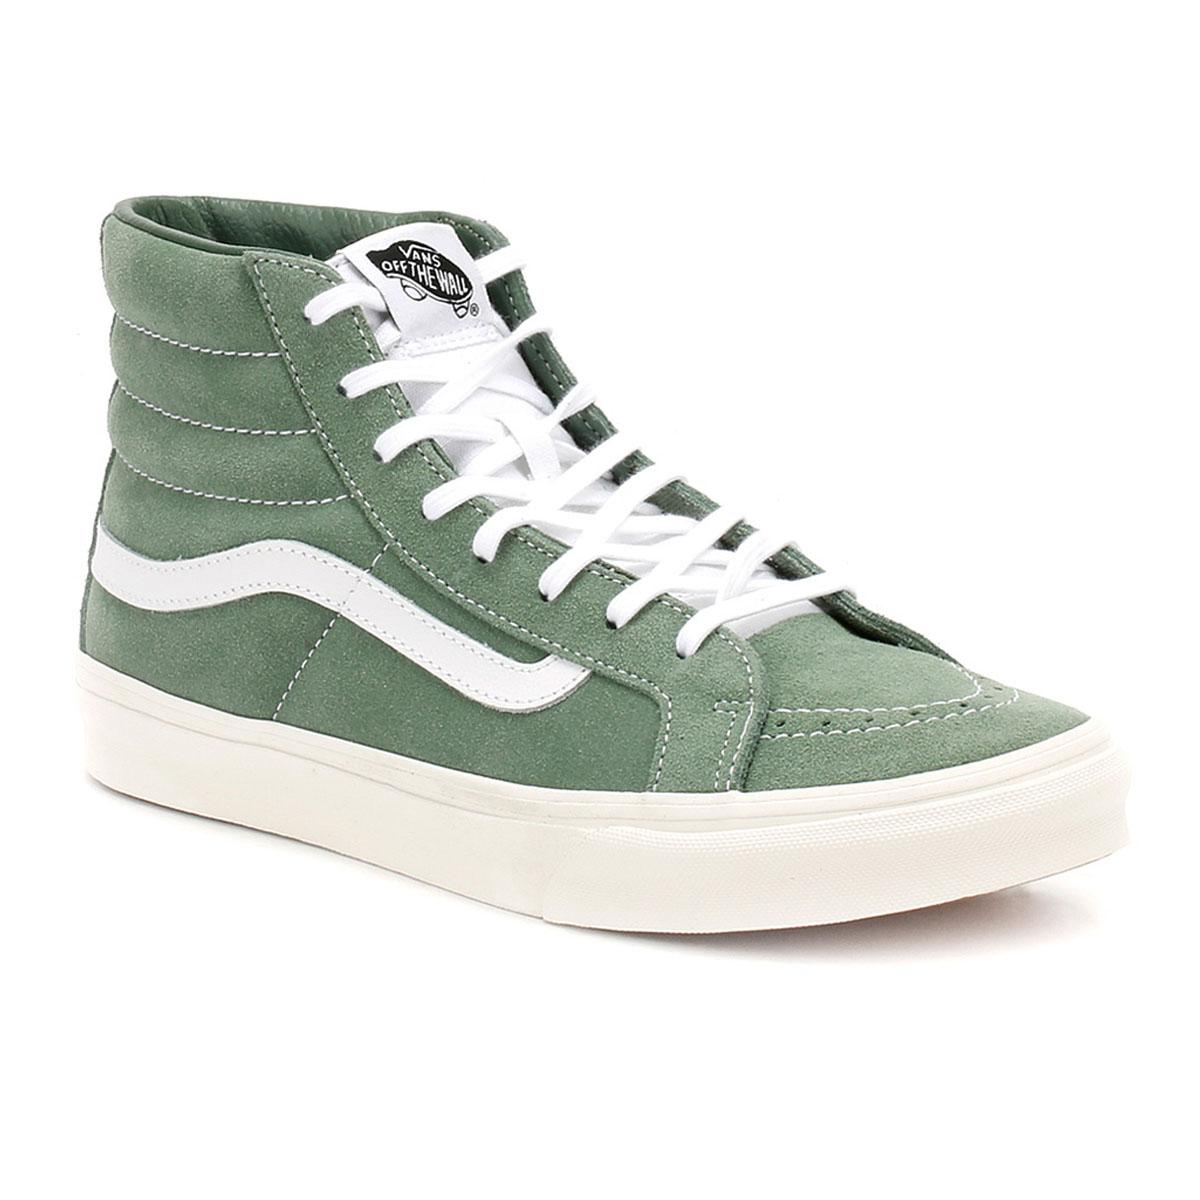 eaf6e9bb2651 Lyst - Vans Womens Green   True White Suede Sk8-hi Slim Trainers in ...